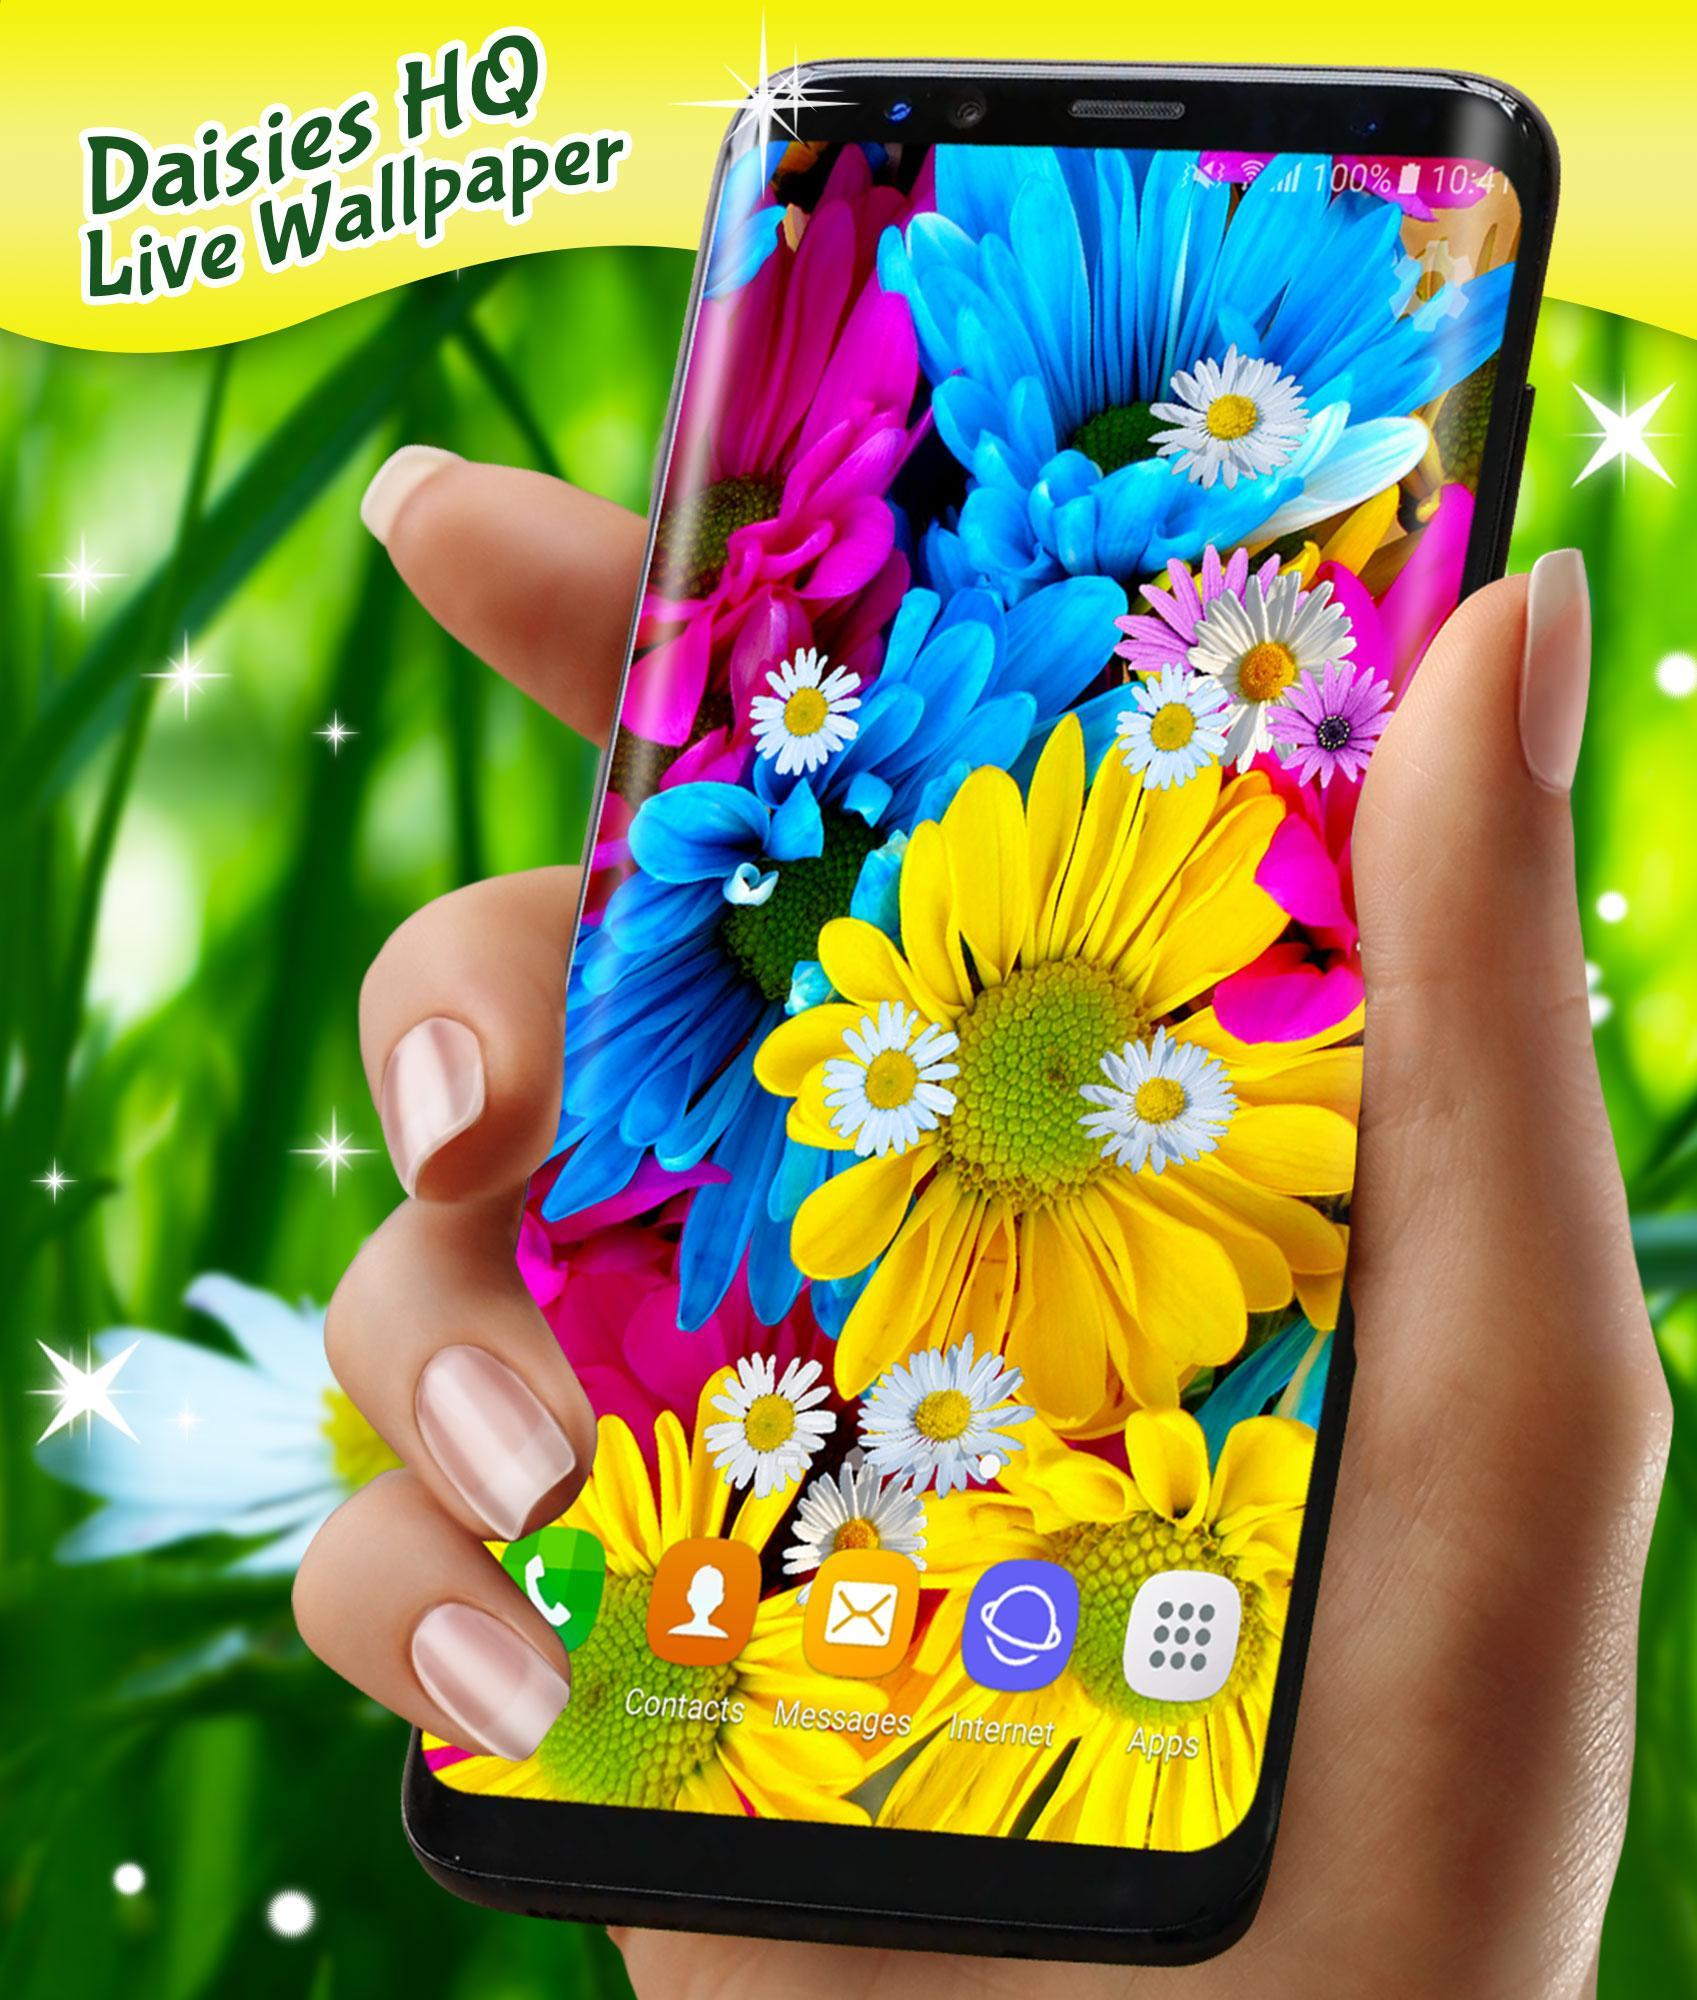 3D Daisy Live Wallpaper 🌼 Spring Field Themes for Android